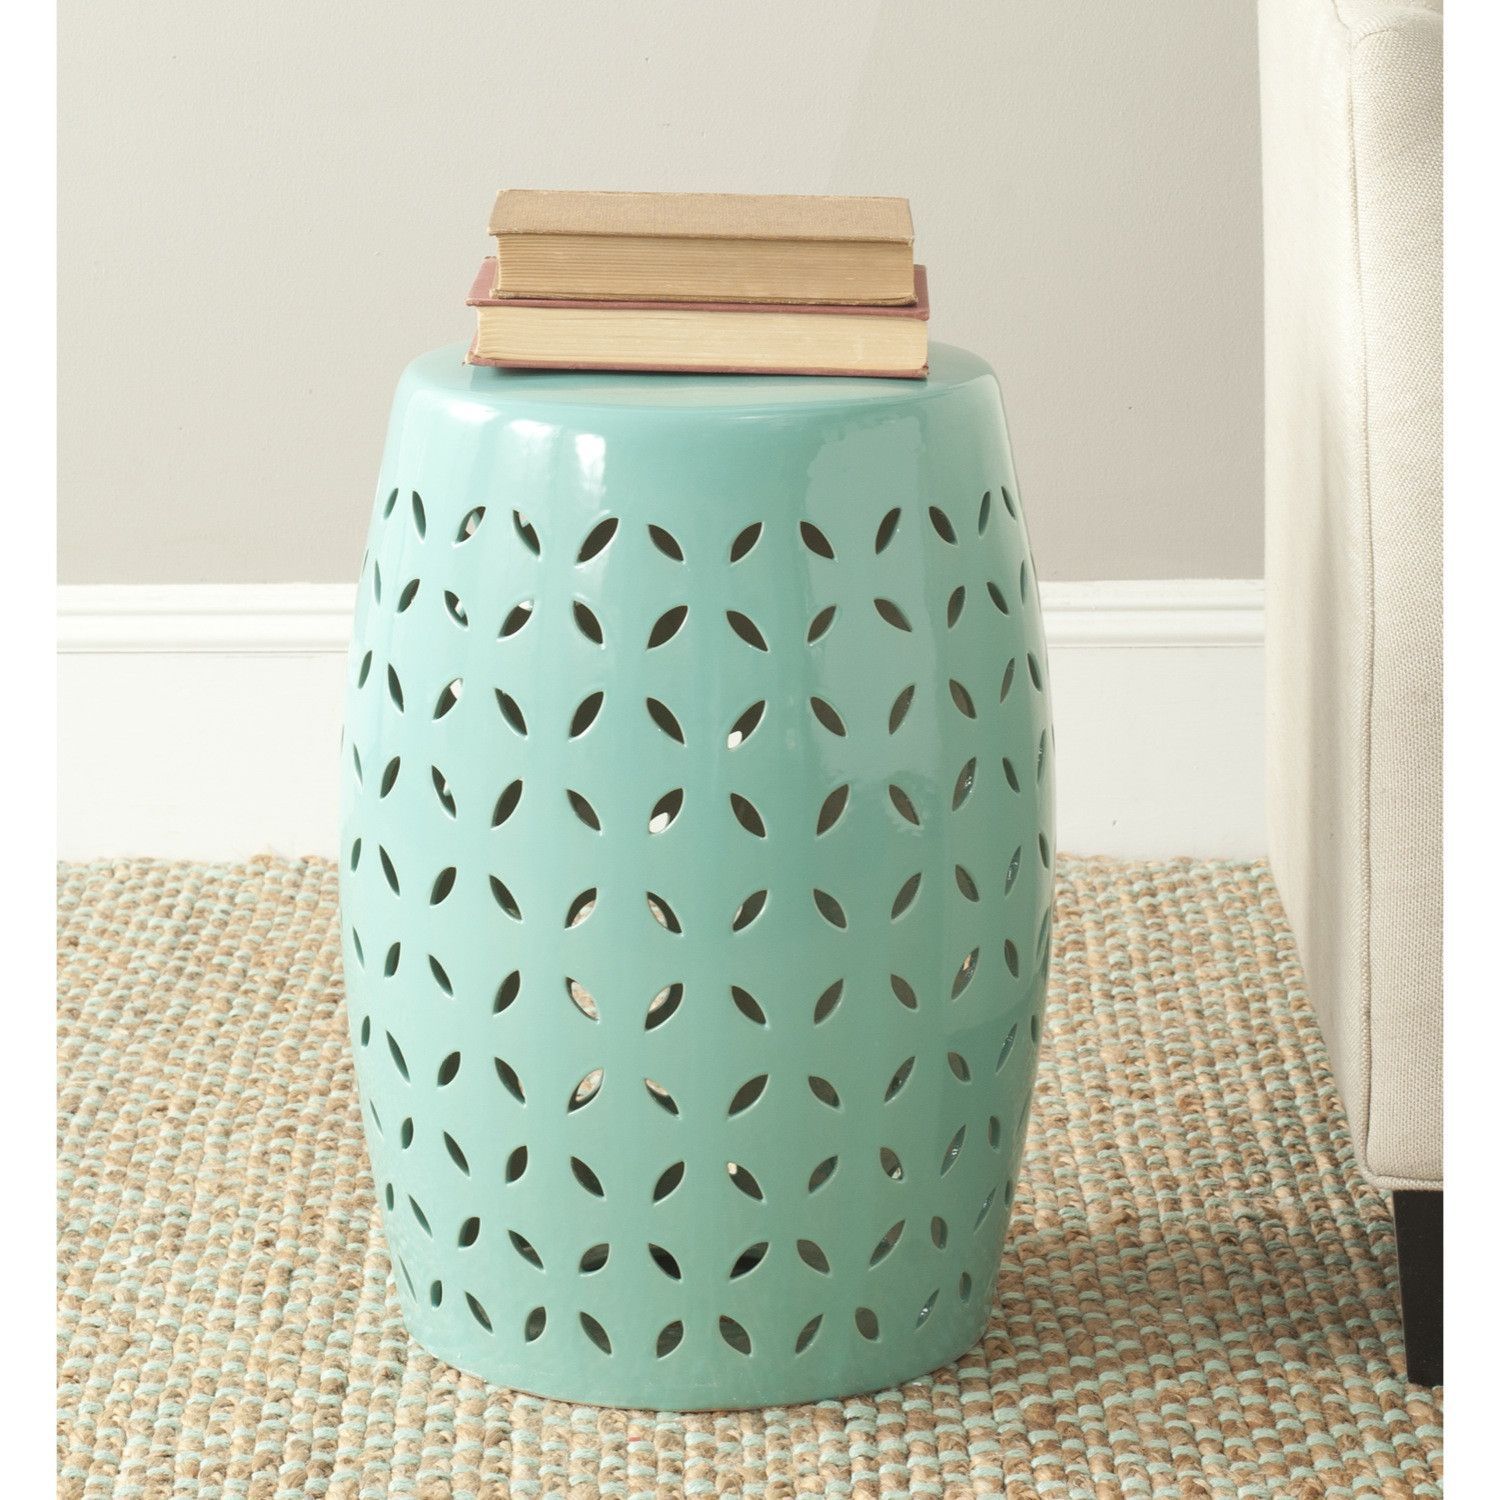 Wrought Studio Feliciana Ceramic Garden Stool | Wayfair Regarding Feliciana Ceramic Garden Stools (View 3 of 25)